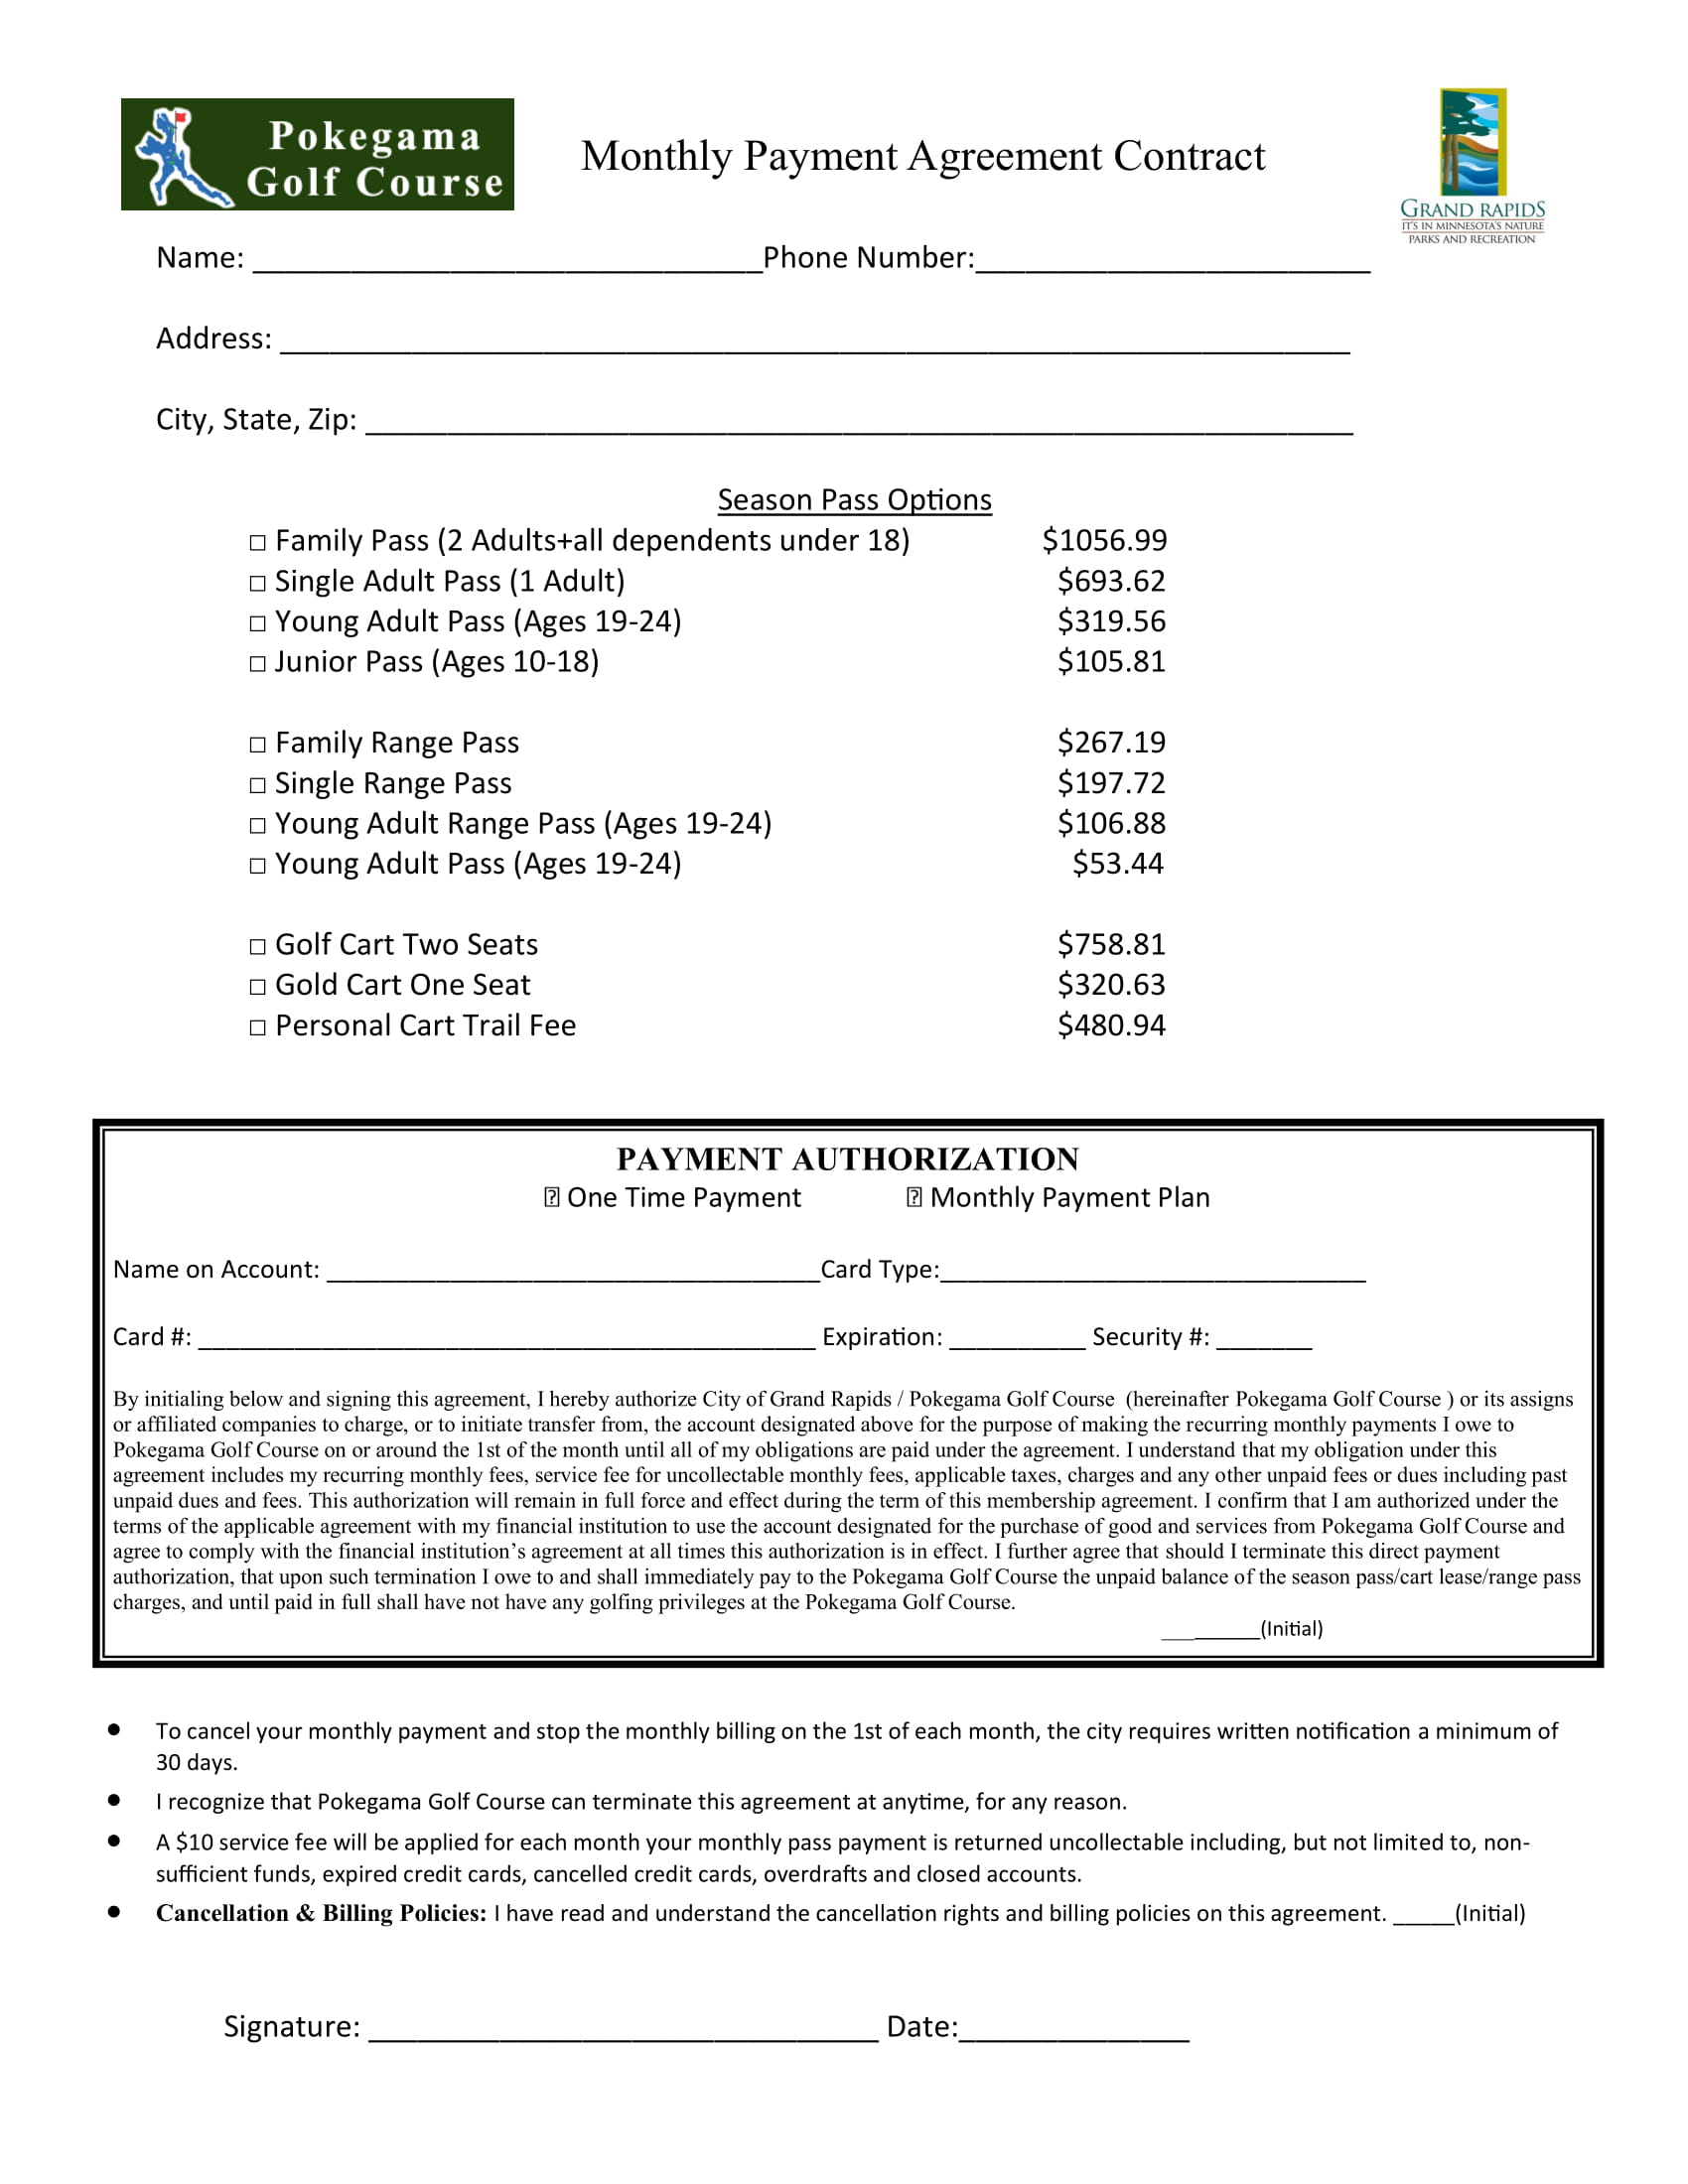 golf monthly payment agreement contract form 1